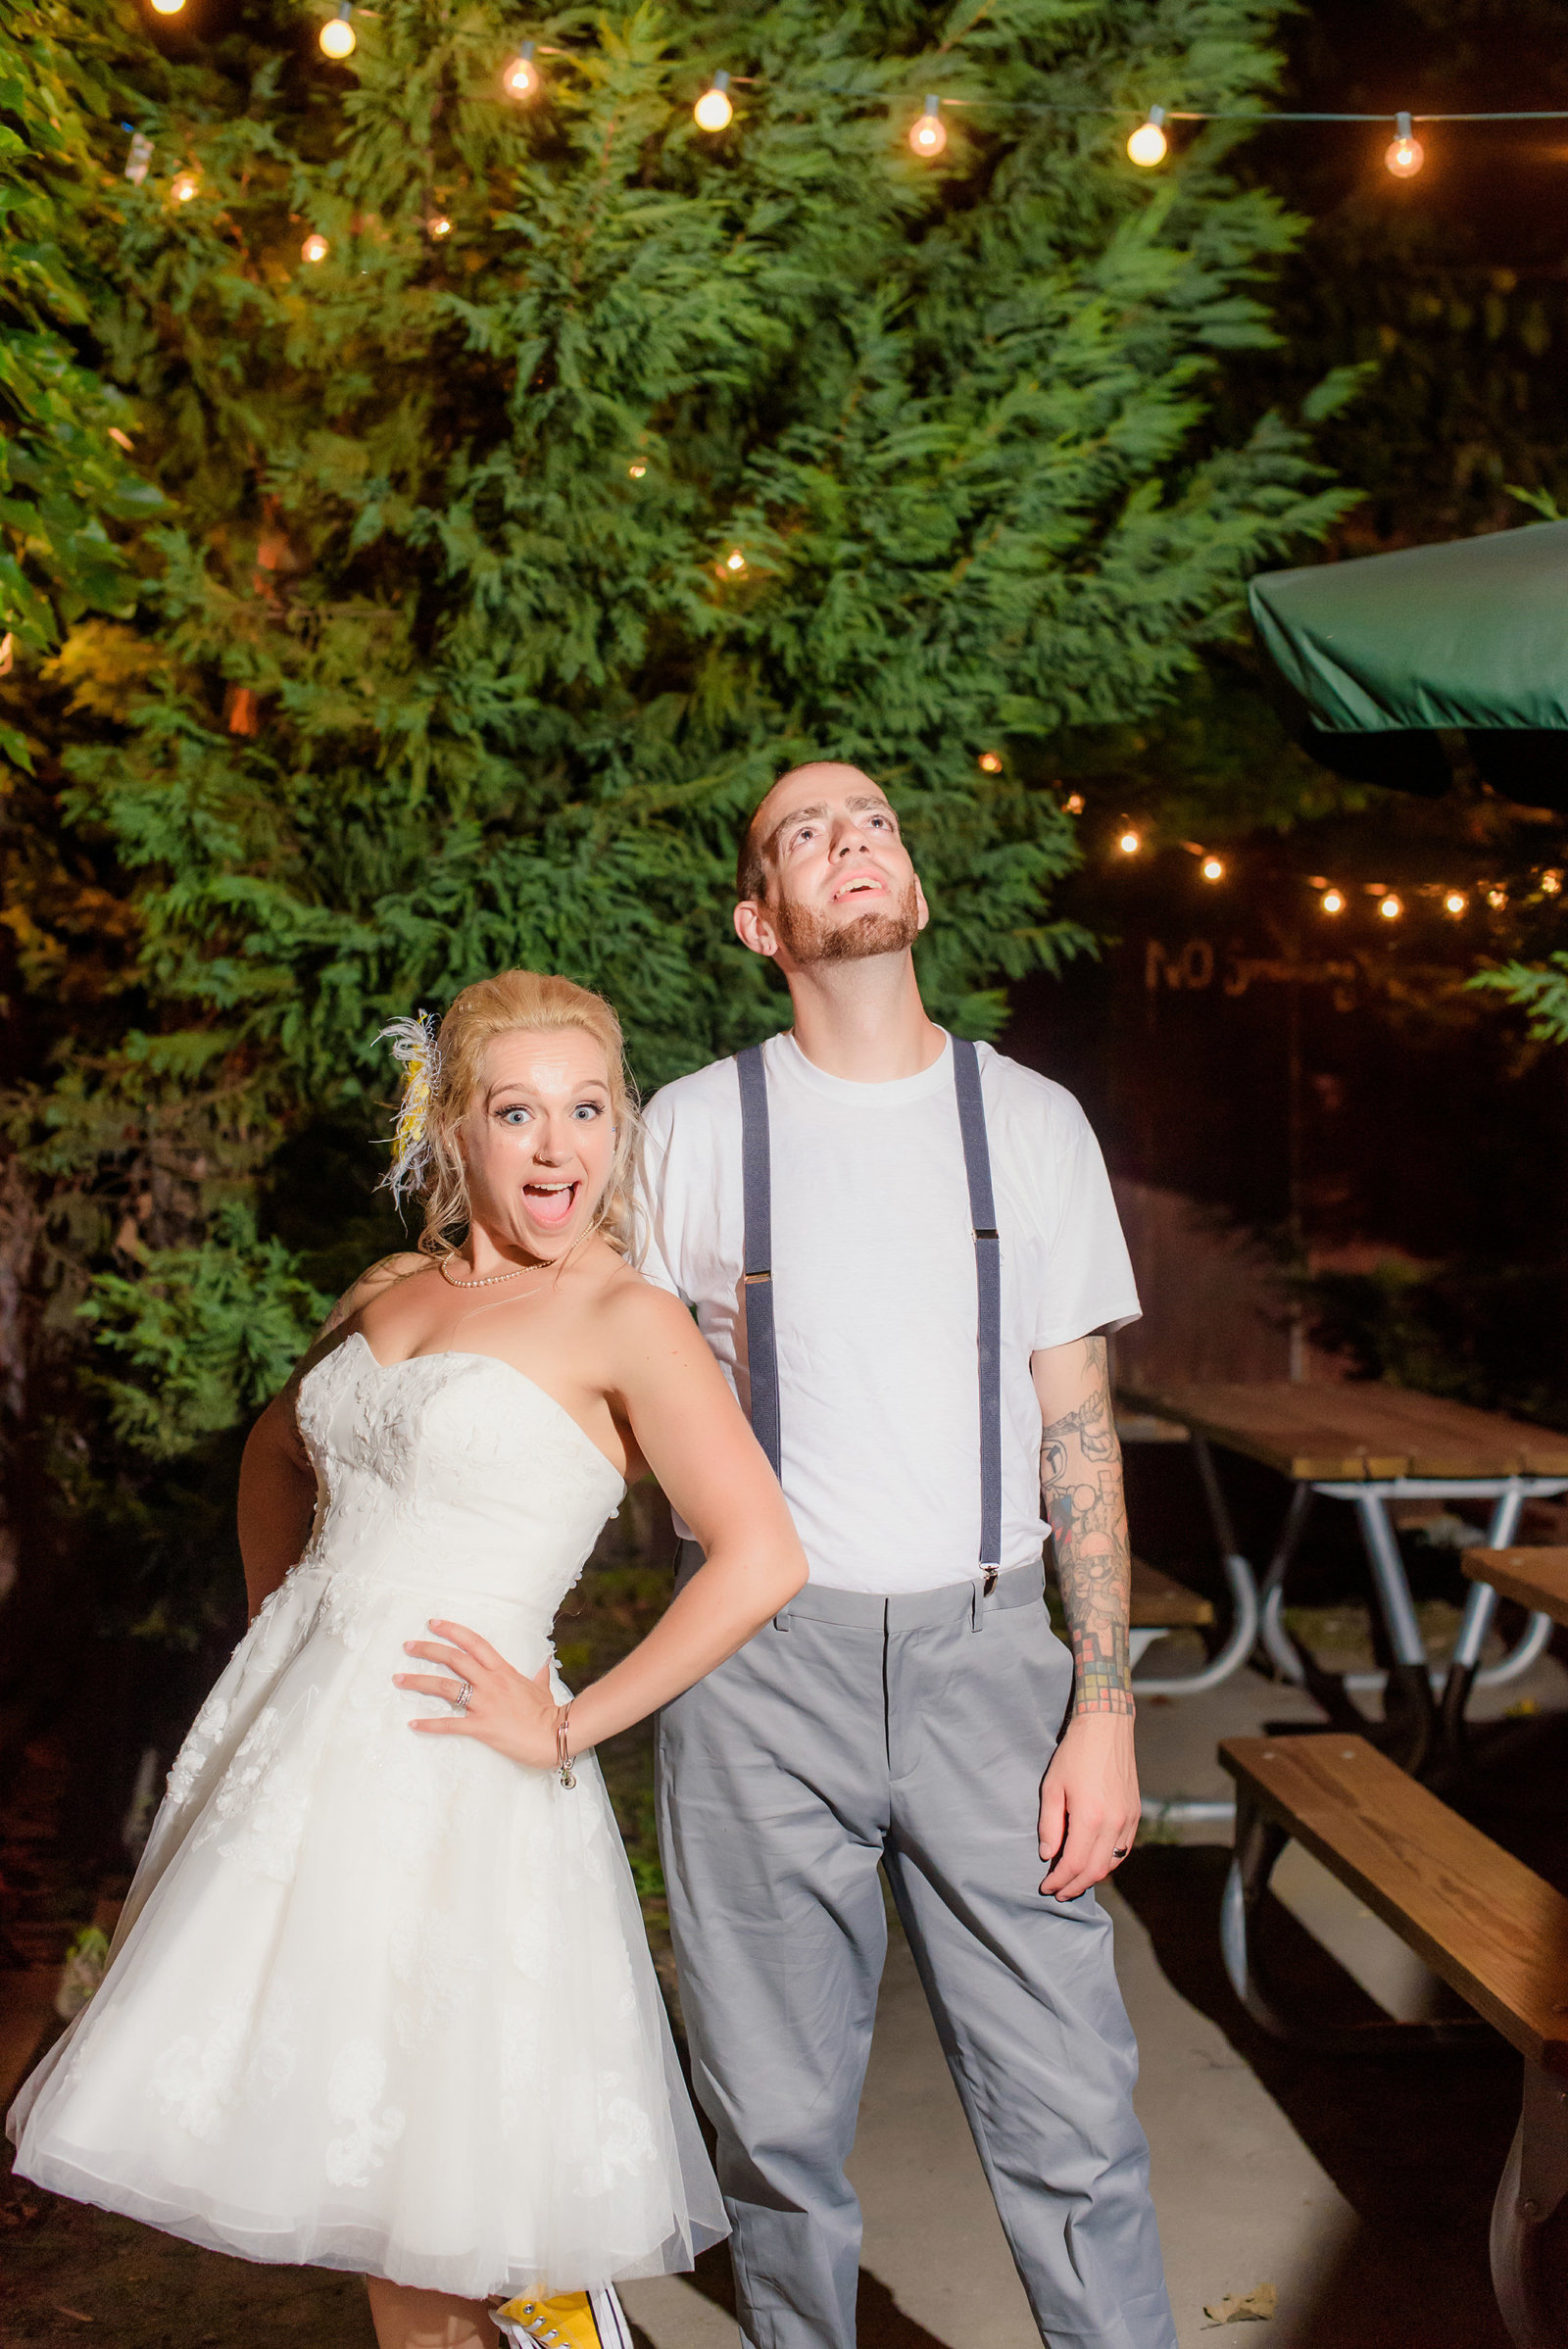 Sam&Zig_Whimsical_NJ_Wedding-165